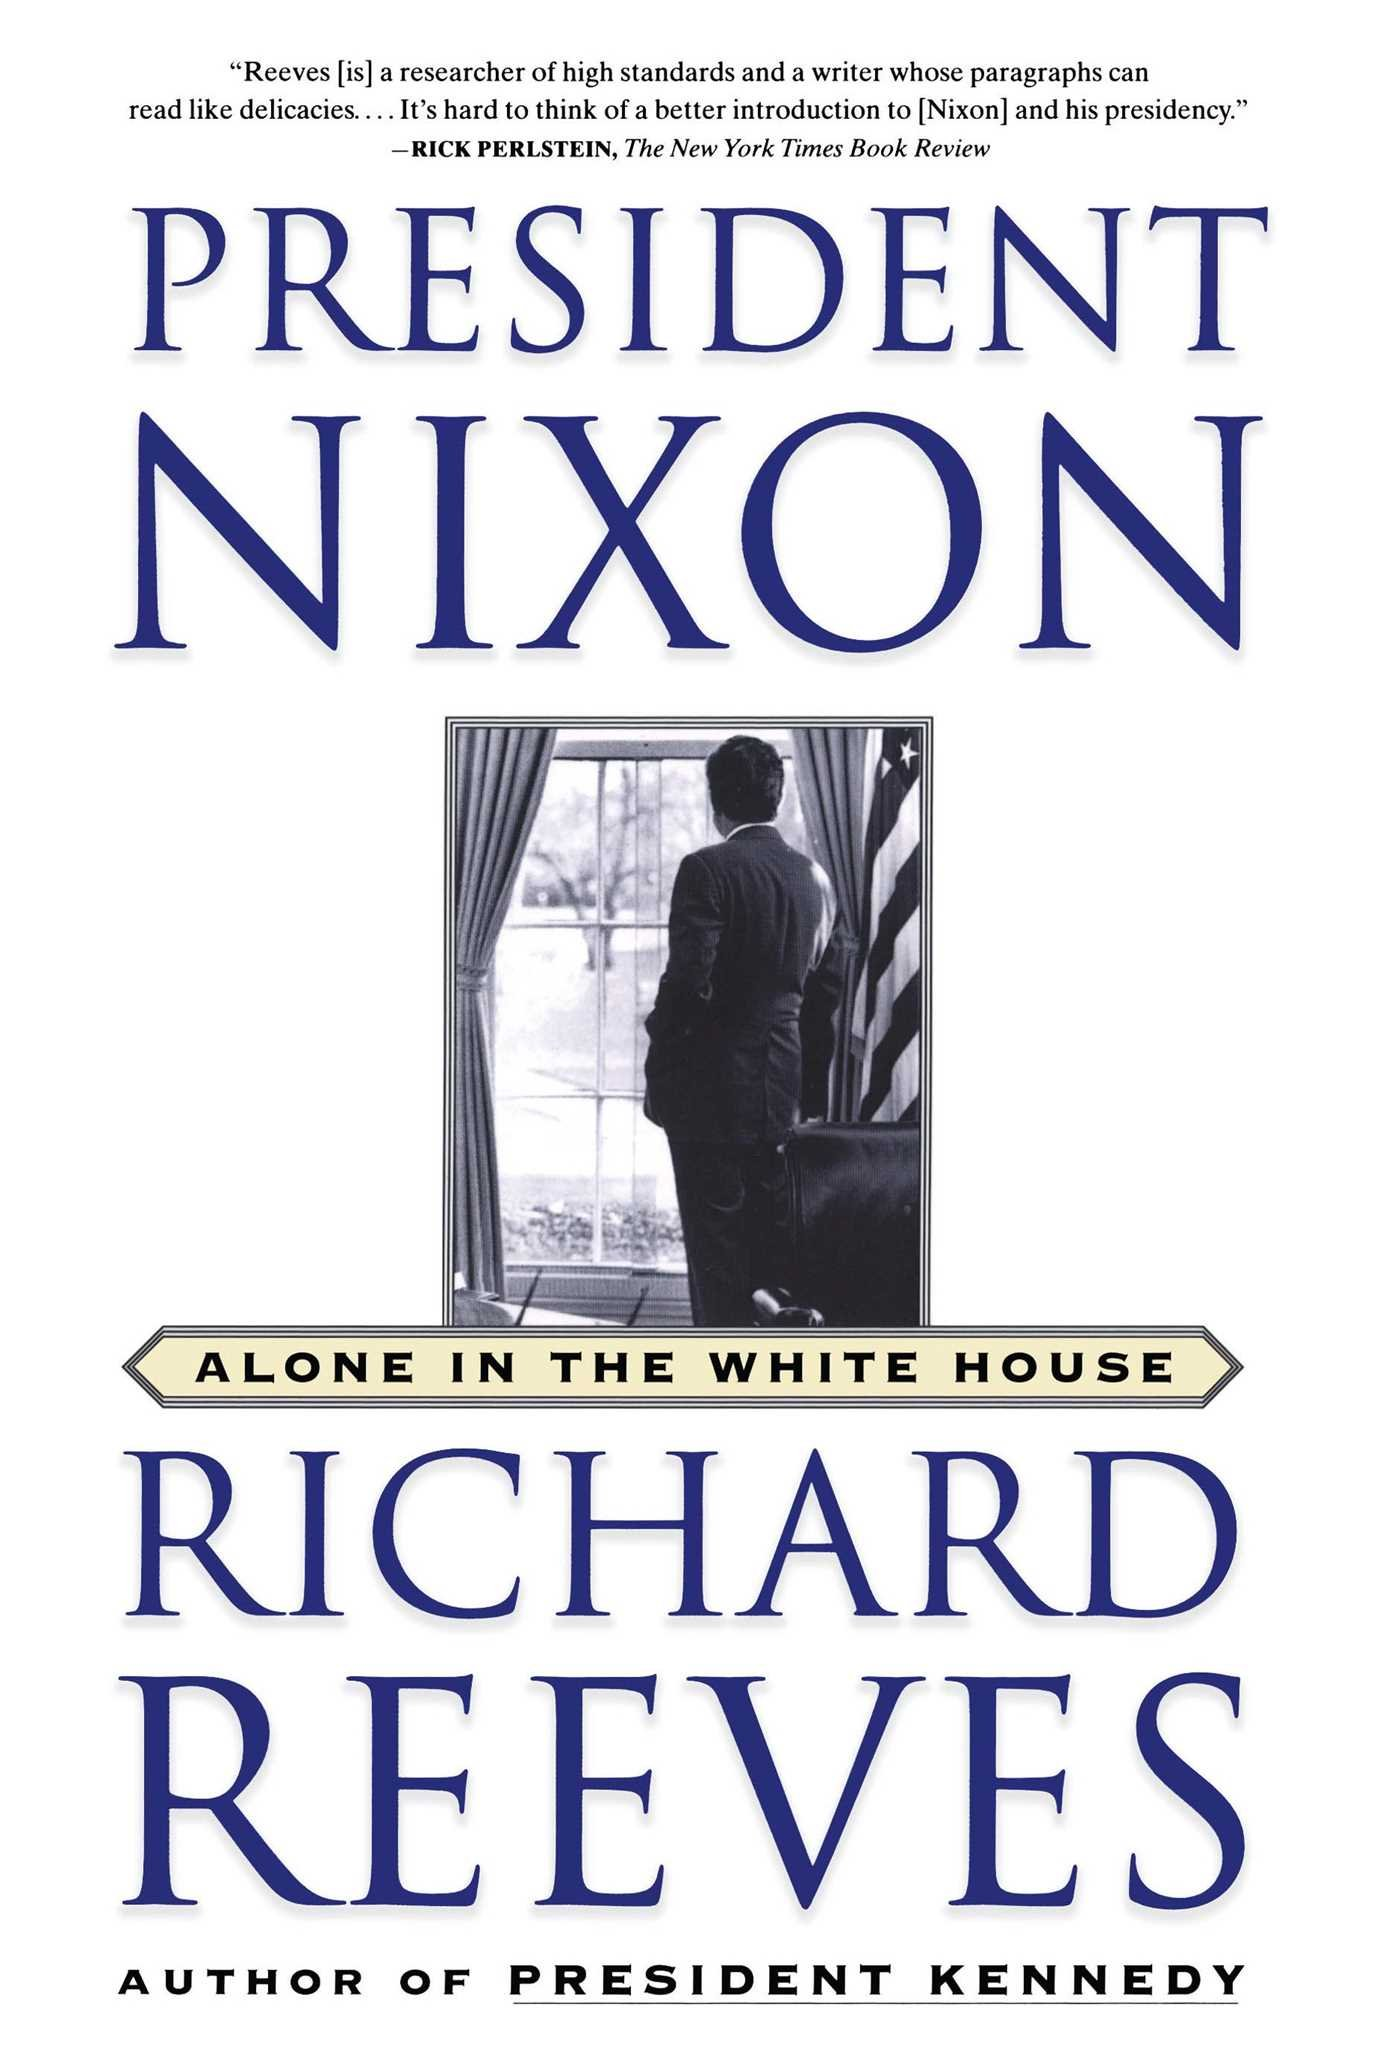 Amazon.com: President Nixon: Alone in the White House (9780743227193): Richard Reeves: Books